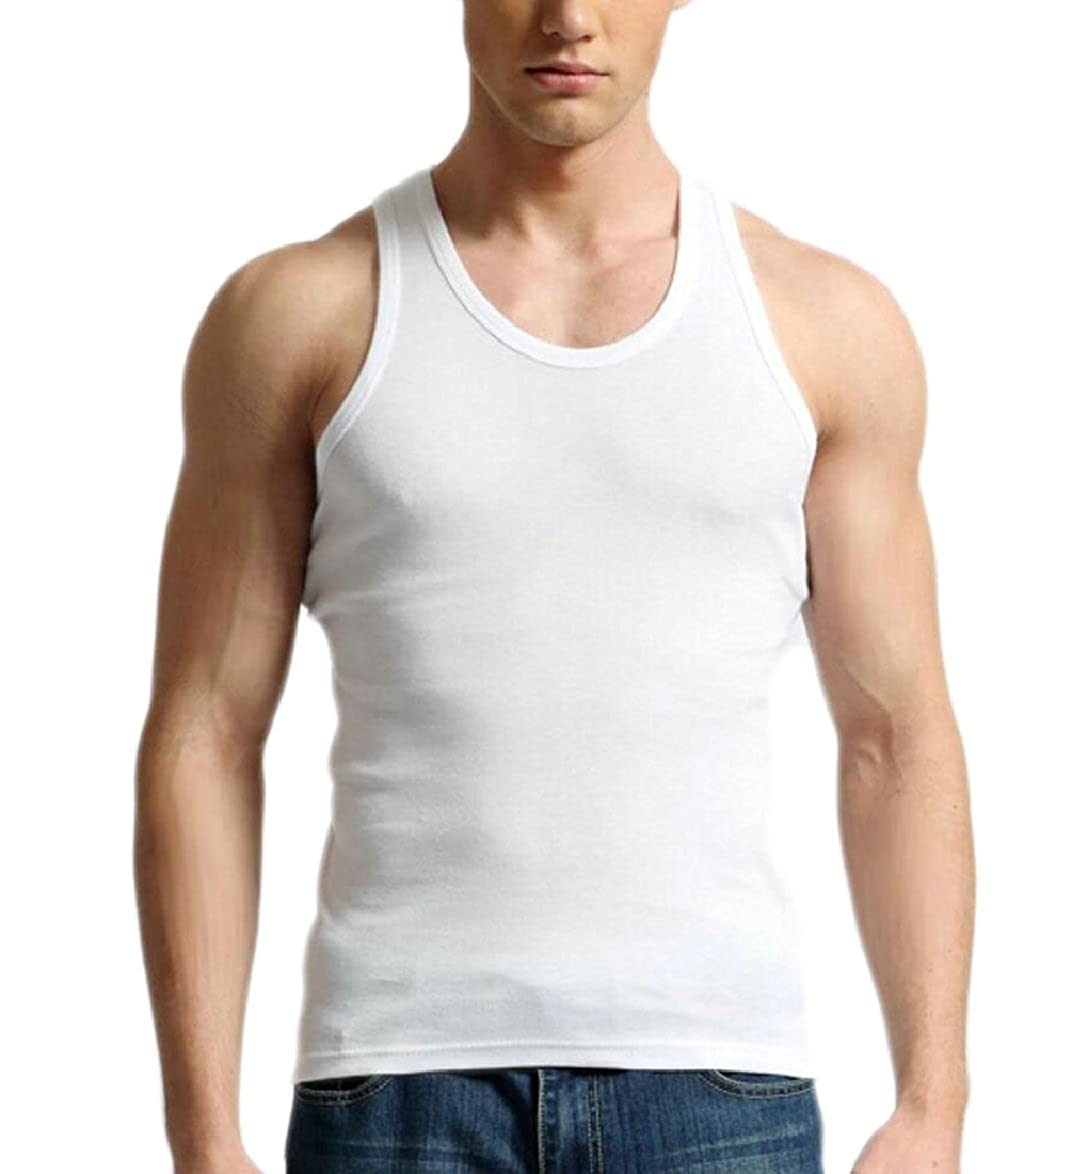 zhaoabao Mens Summer Solid Color Sleeveless Slim Sports Tank Tops